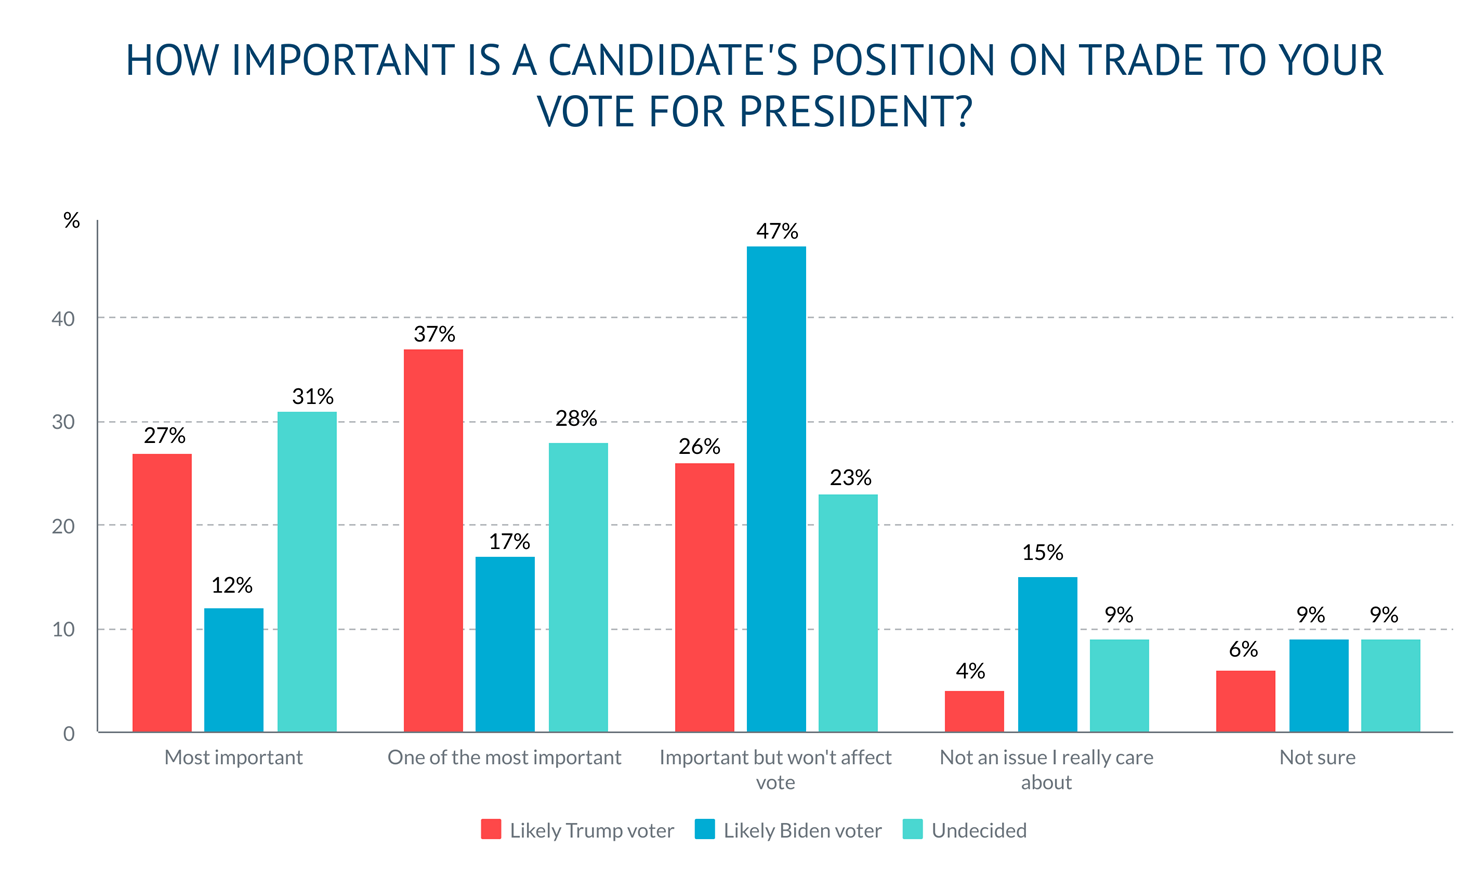 Q4 How Important is Trade to your vote